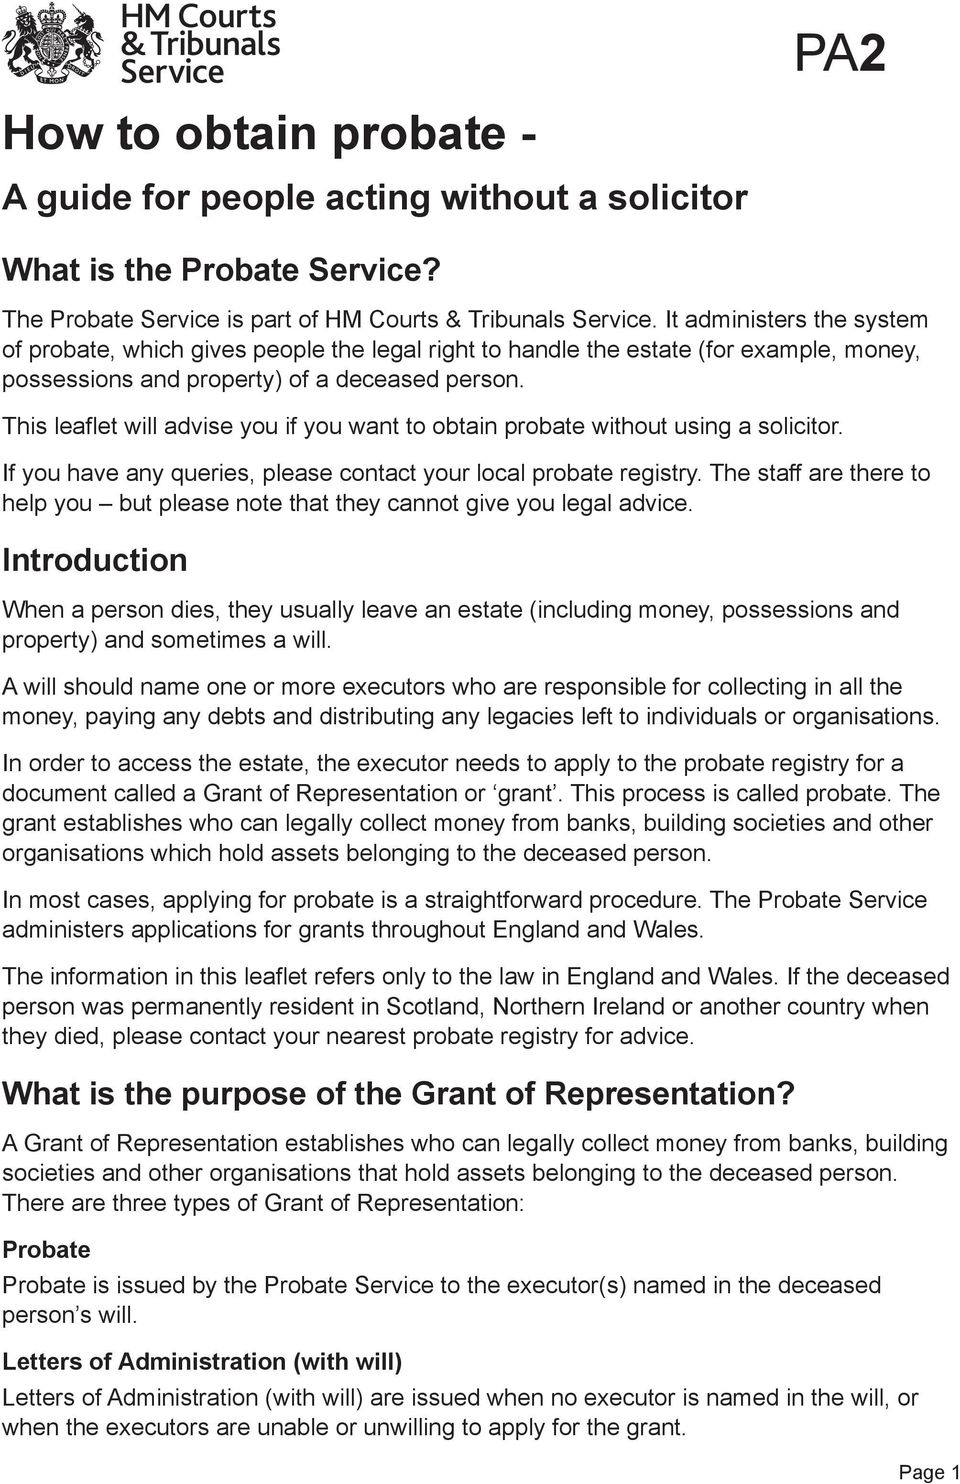 This leaflet will advise you if you want to obtain probate without using a solicitor. If you have any queries, please contact your local probate registry.